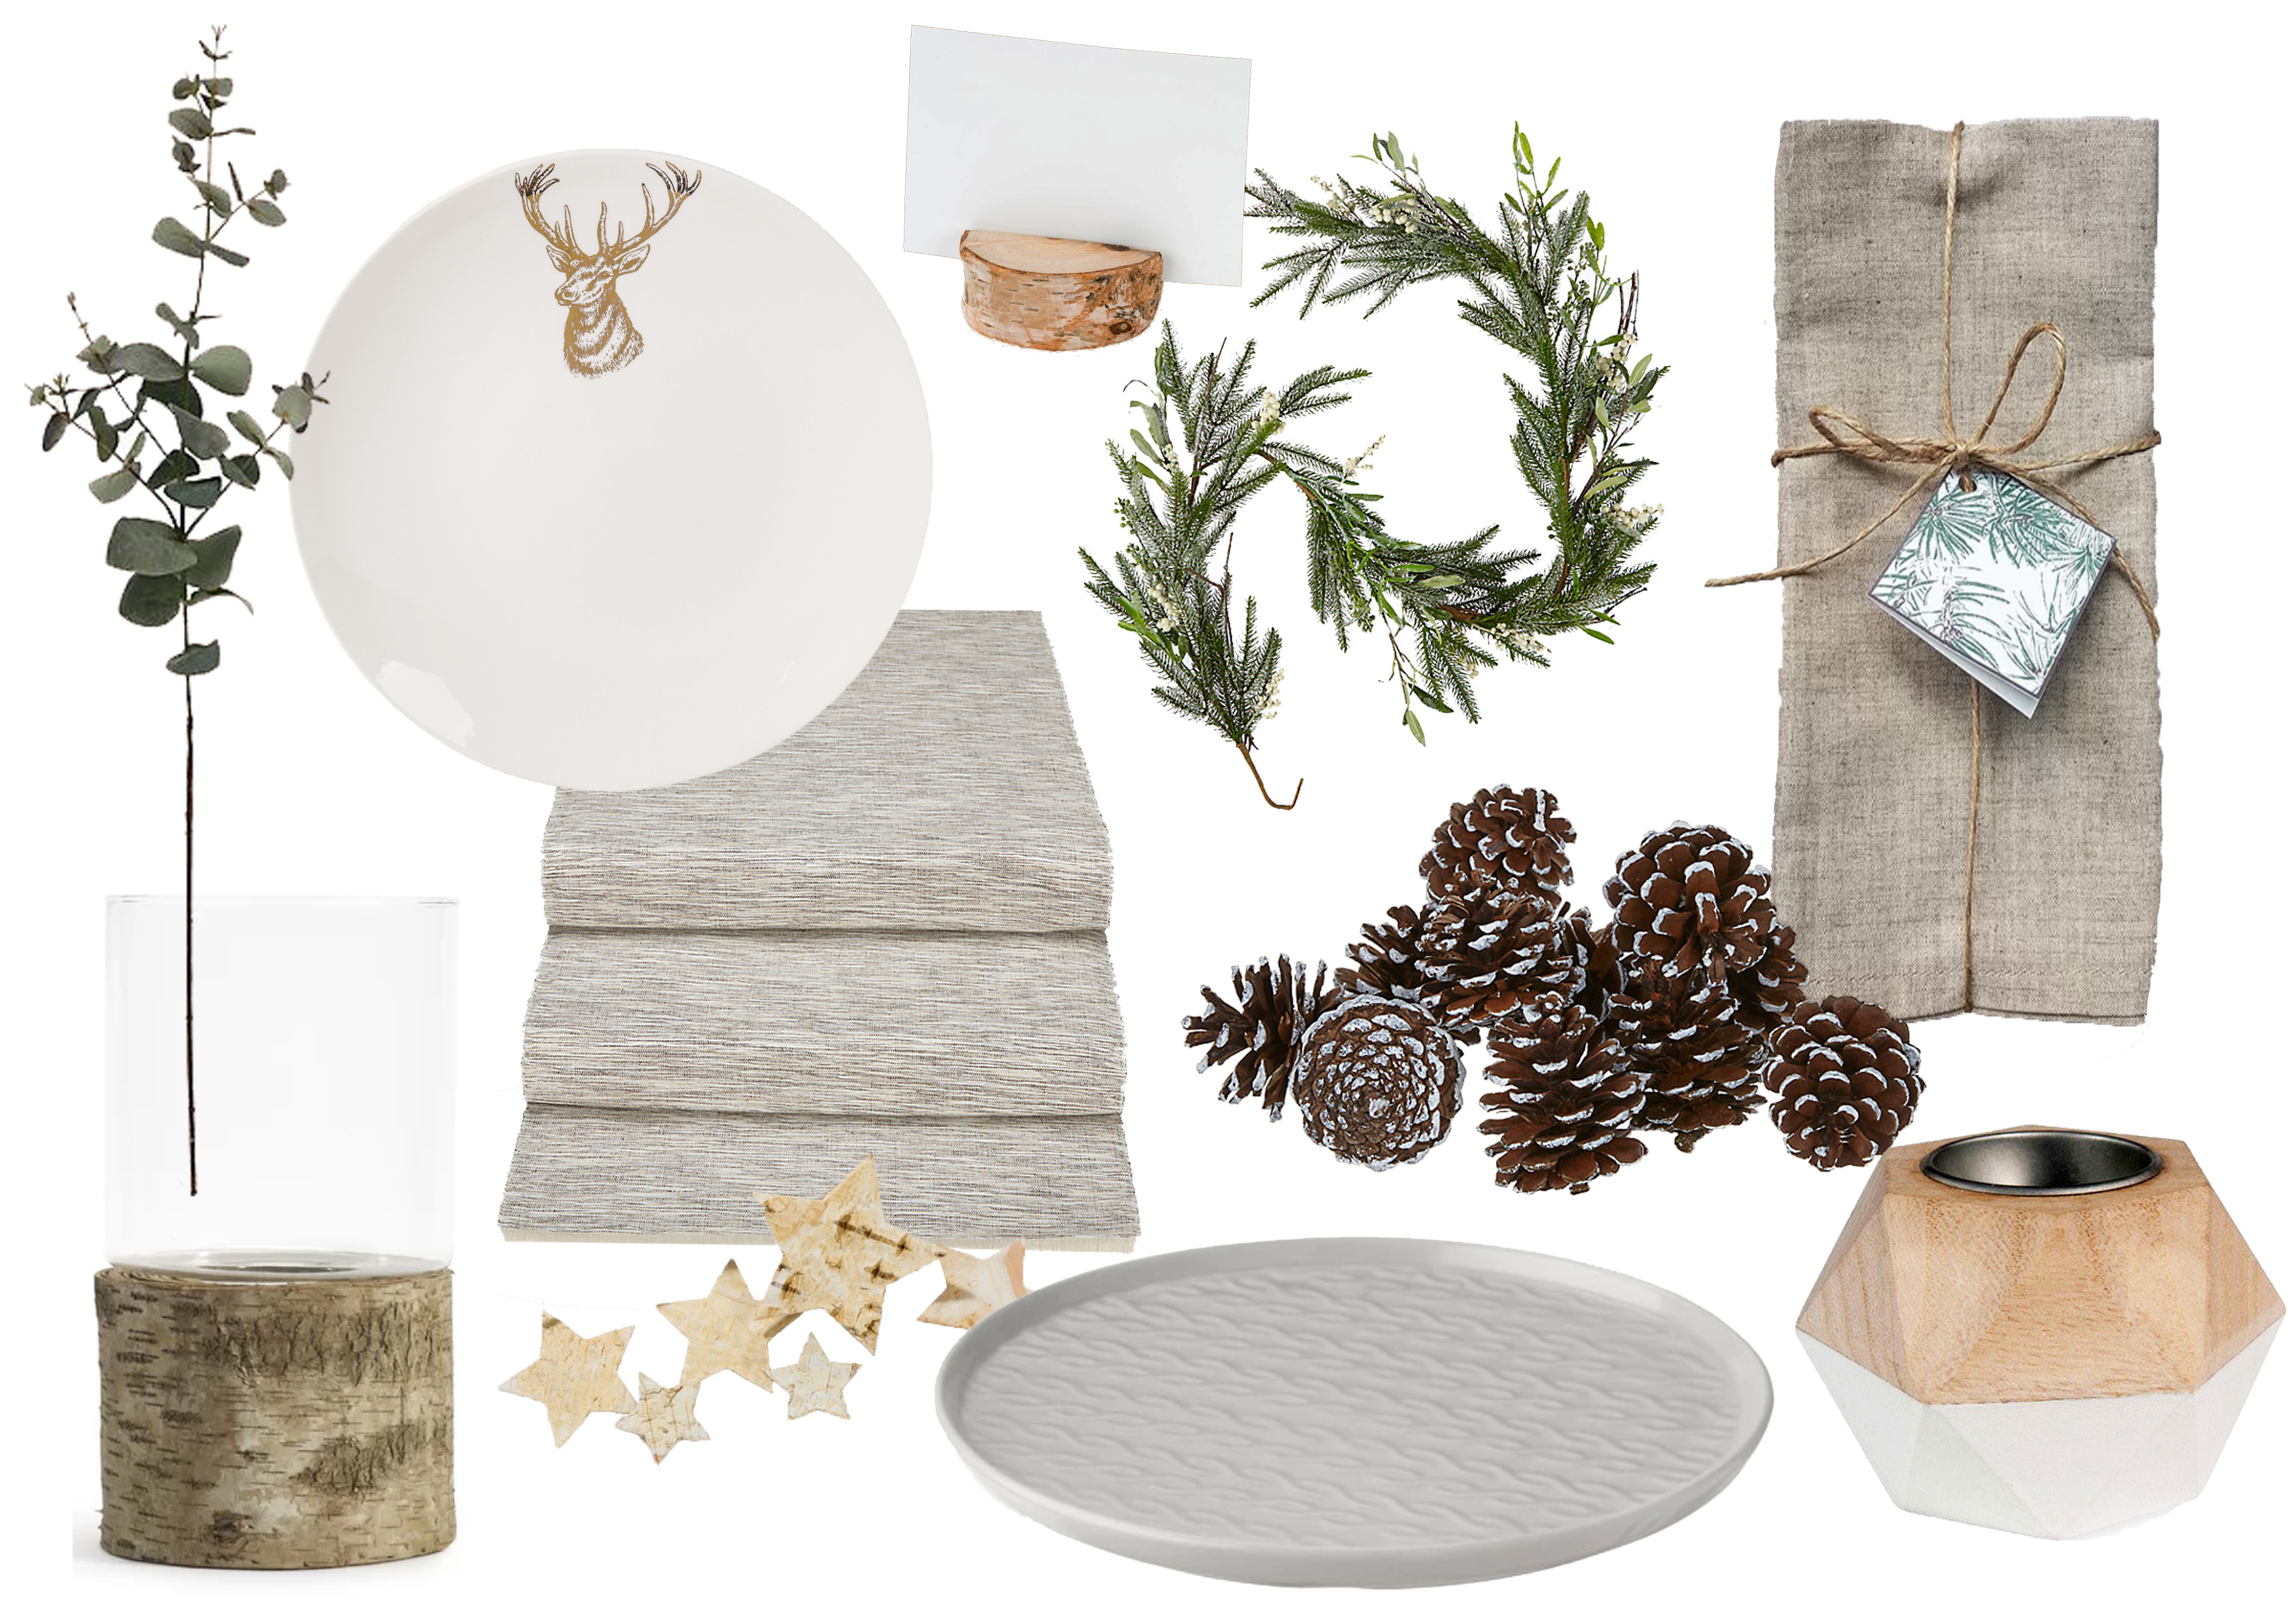 Be inspired By these 3 festive table ideas. Shop the look with the downloadable shopping lists. Enjoy!